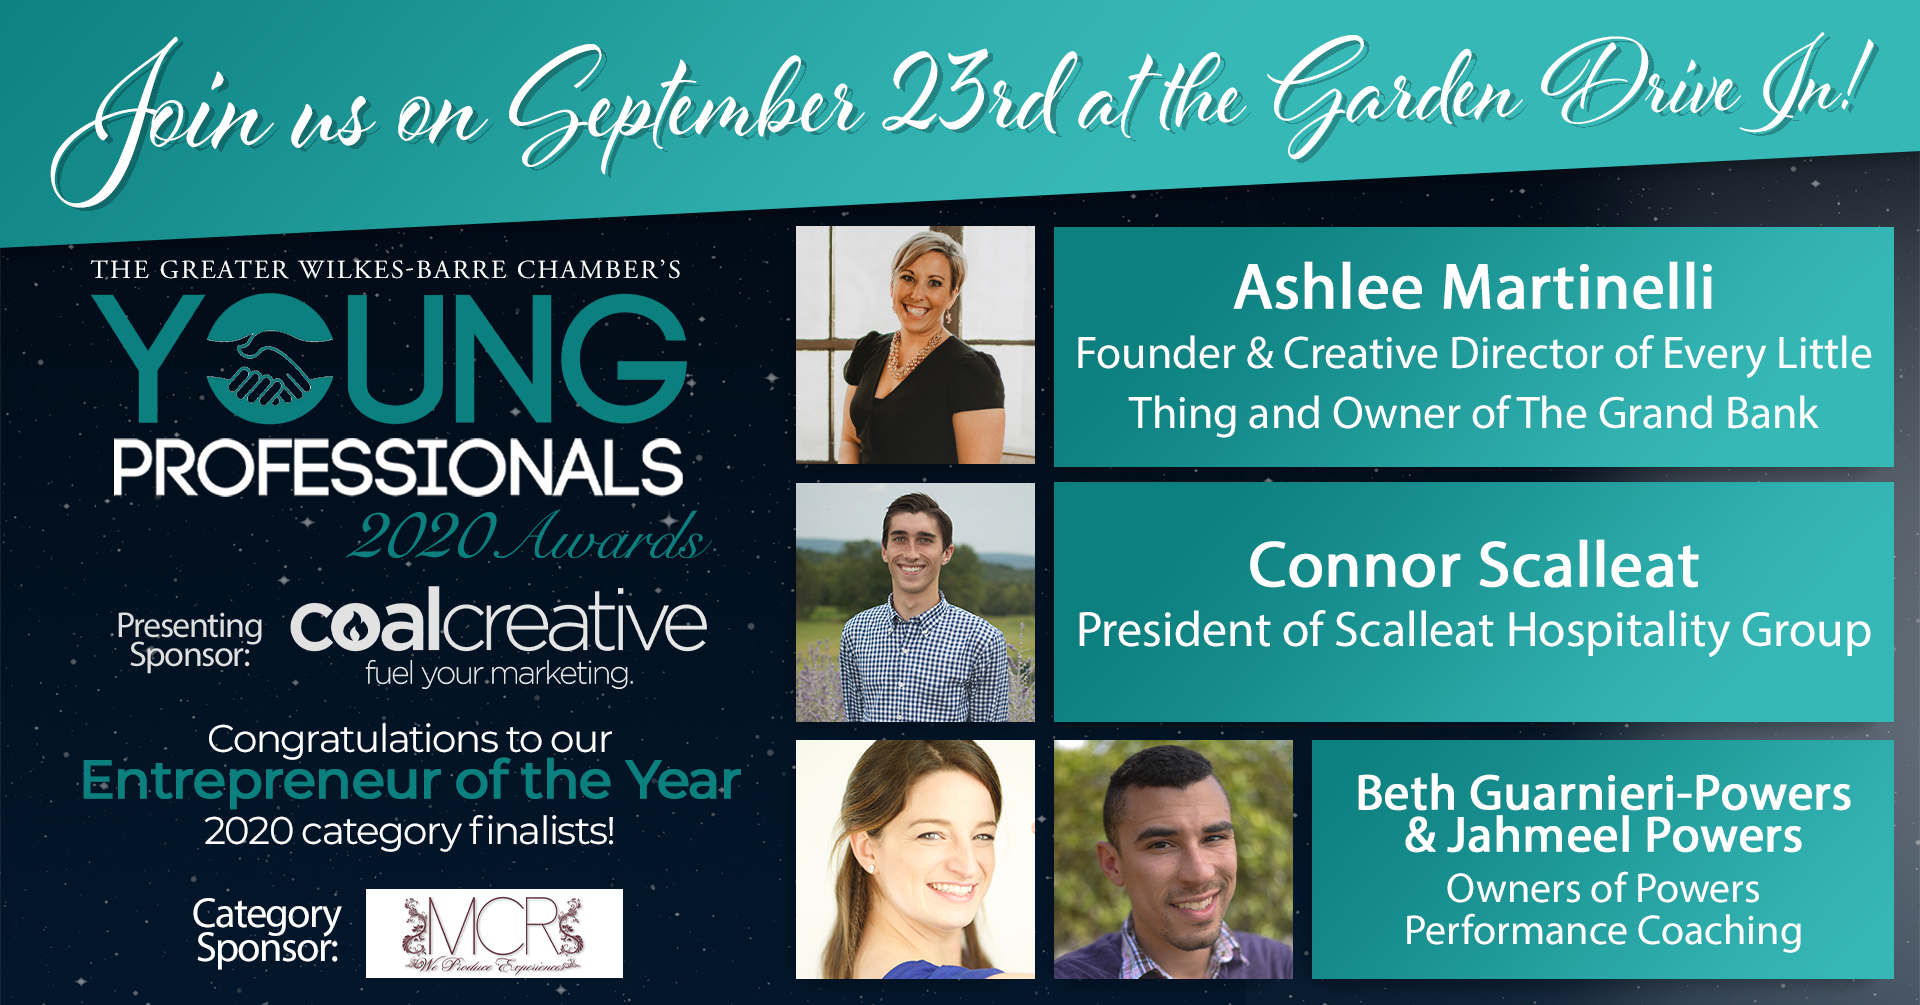 Meet the 2020 Young Professionals Category Finalists for Entrepreneur of the Year!